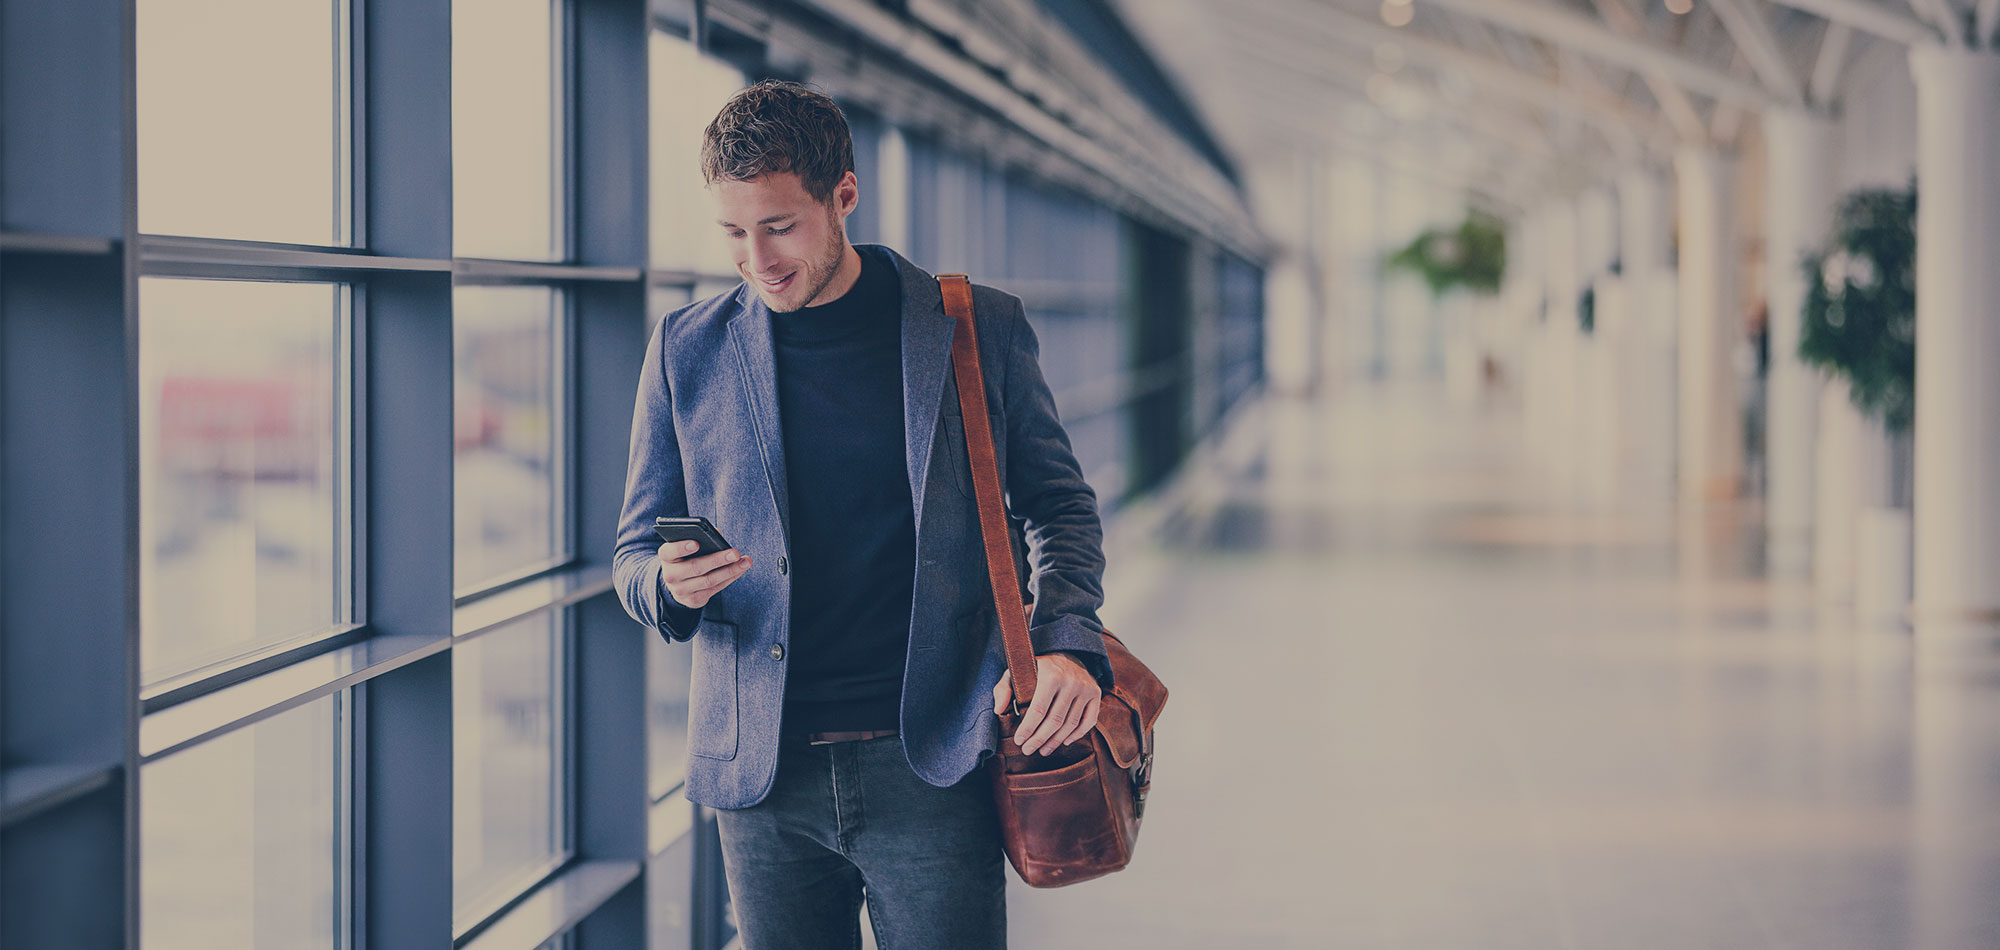 What Is Roaming & Why Does Your WLAN Design Need to Support It?